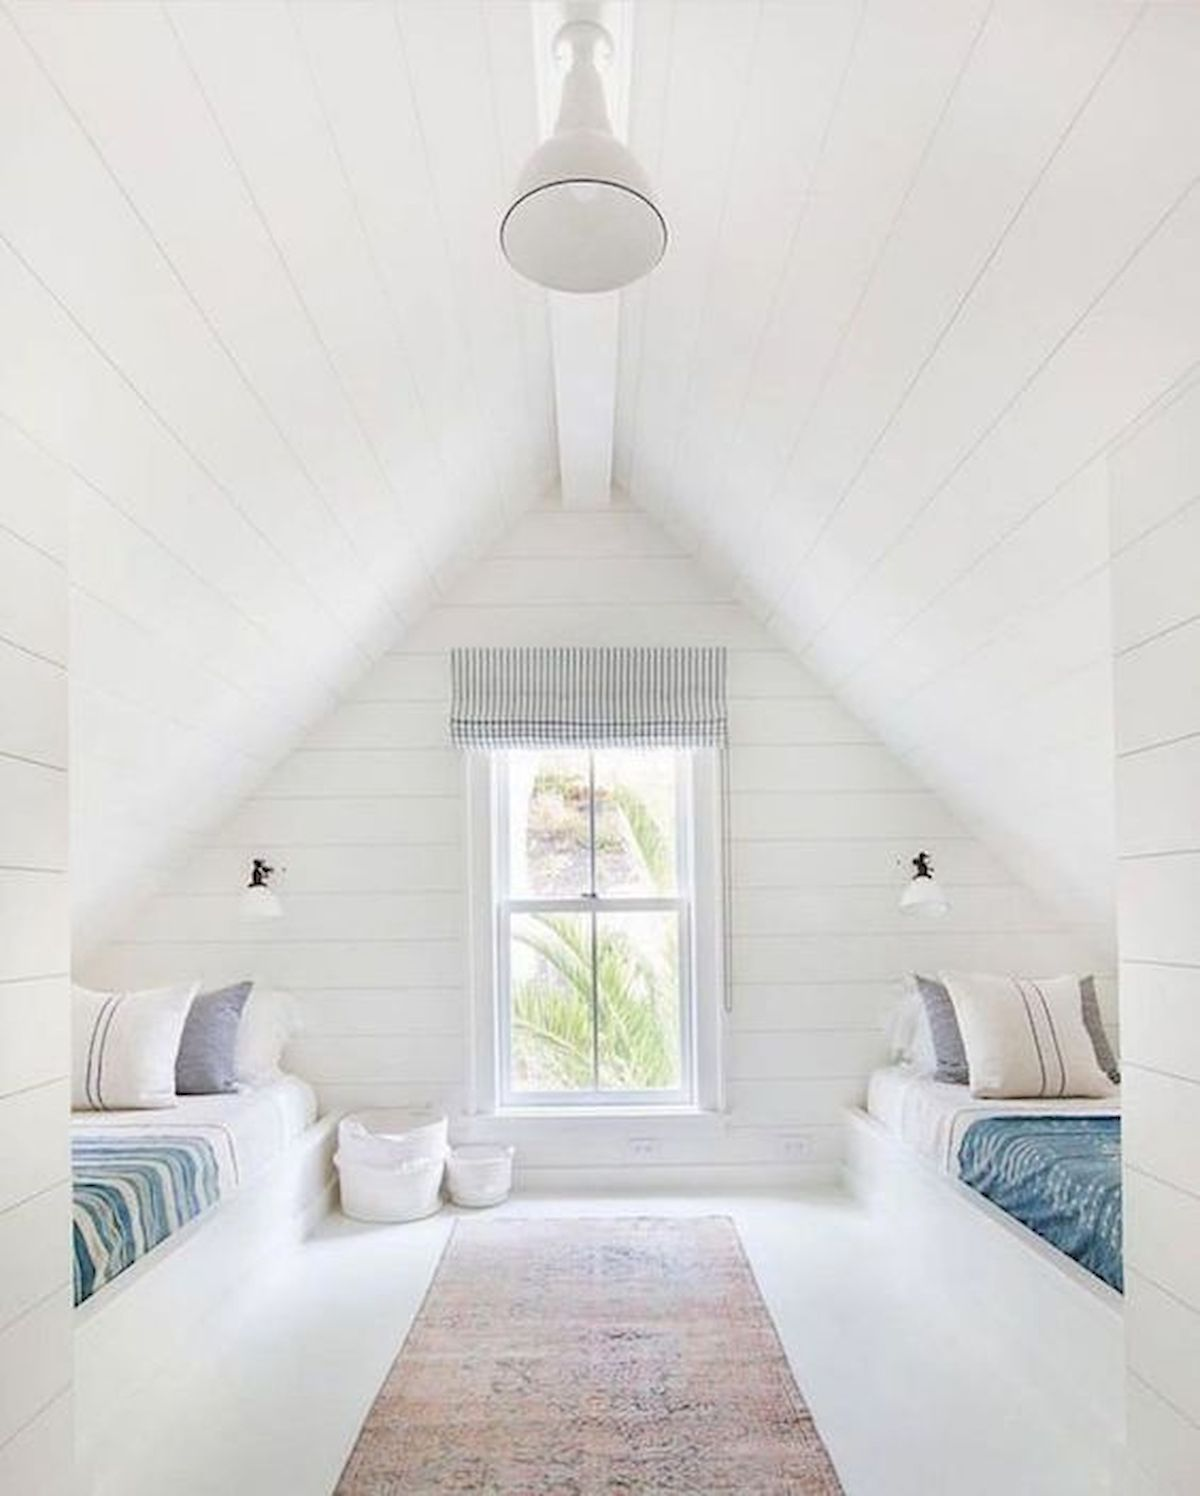 40 Awesome Attic Bedroom Design and Decorating Ideas (21)